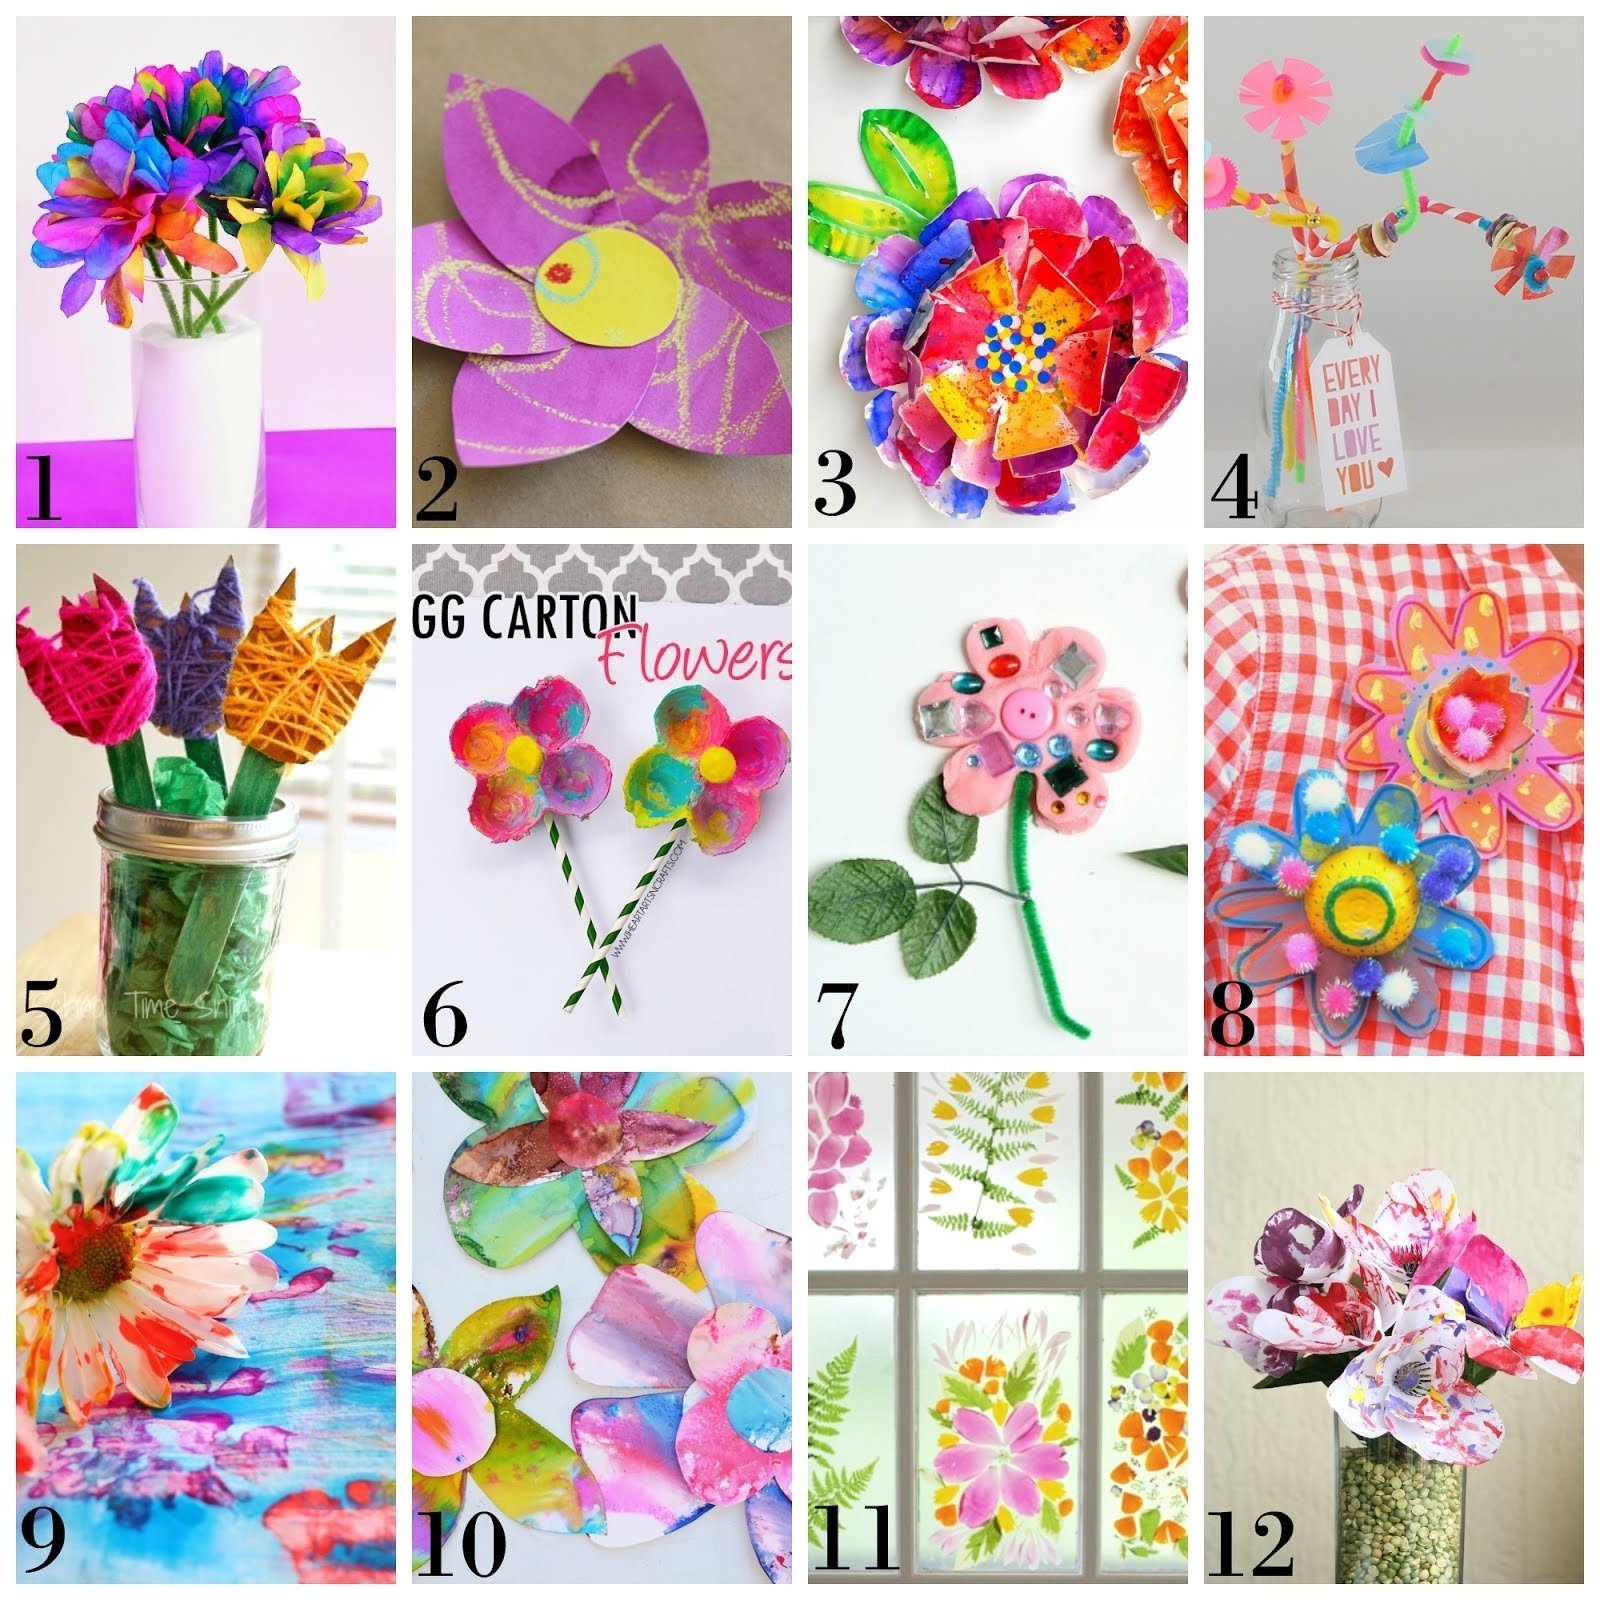 10 Fashionable Spring Arts And Crafts Ideas 12 beautiful spring flower process art ideas for kids 2020